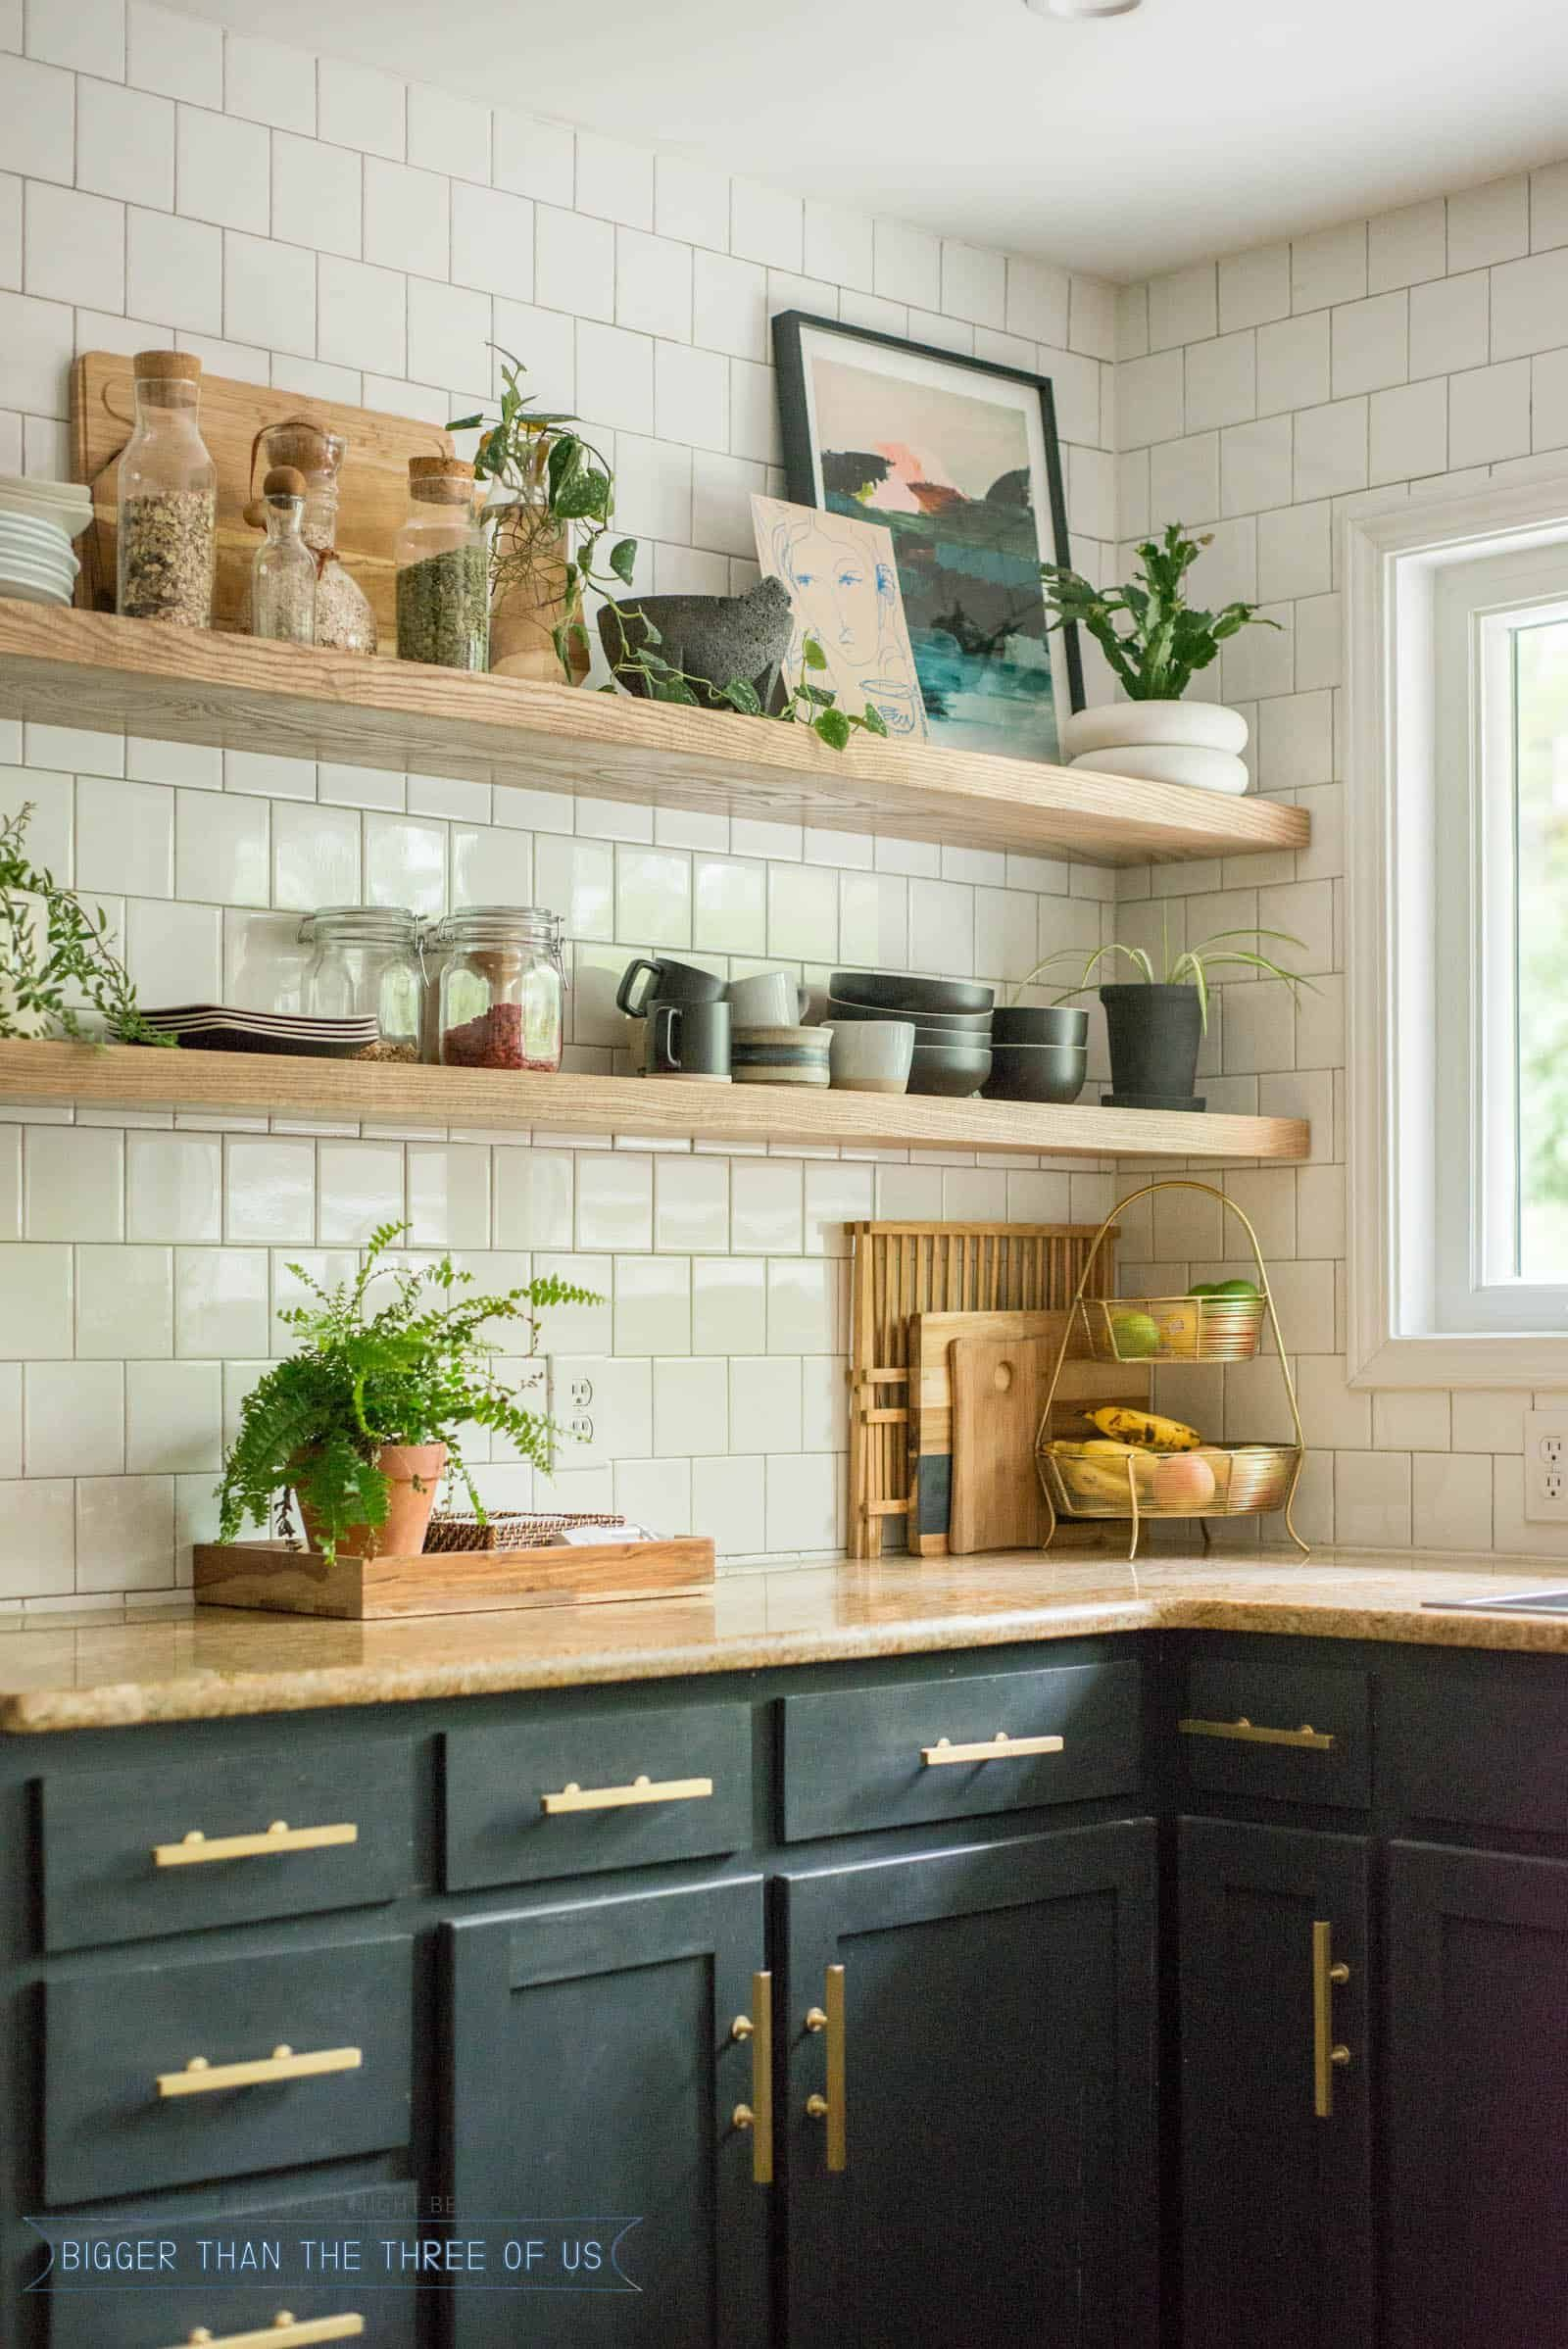 American Home Interior Diy Open Shelving Kitchen How To Mount A Floating Shelf How To H In 2020 Open Kitchen Cabinets Floating Shelves Kitchen Open Kitchen Shelves